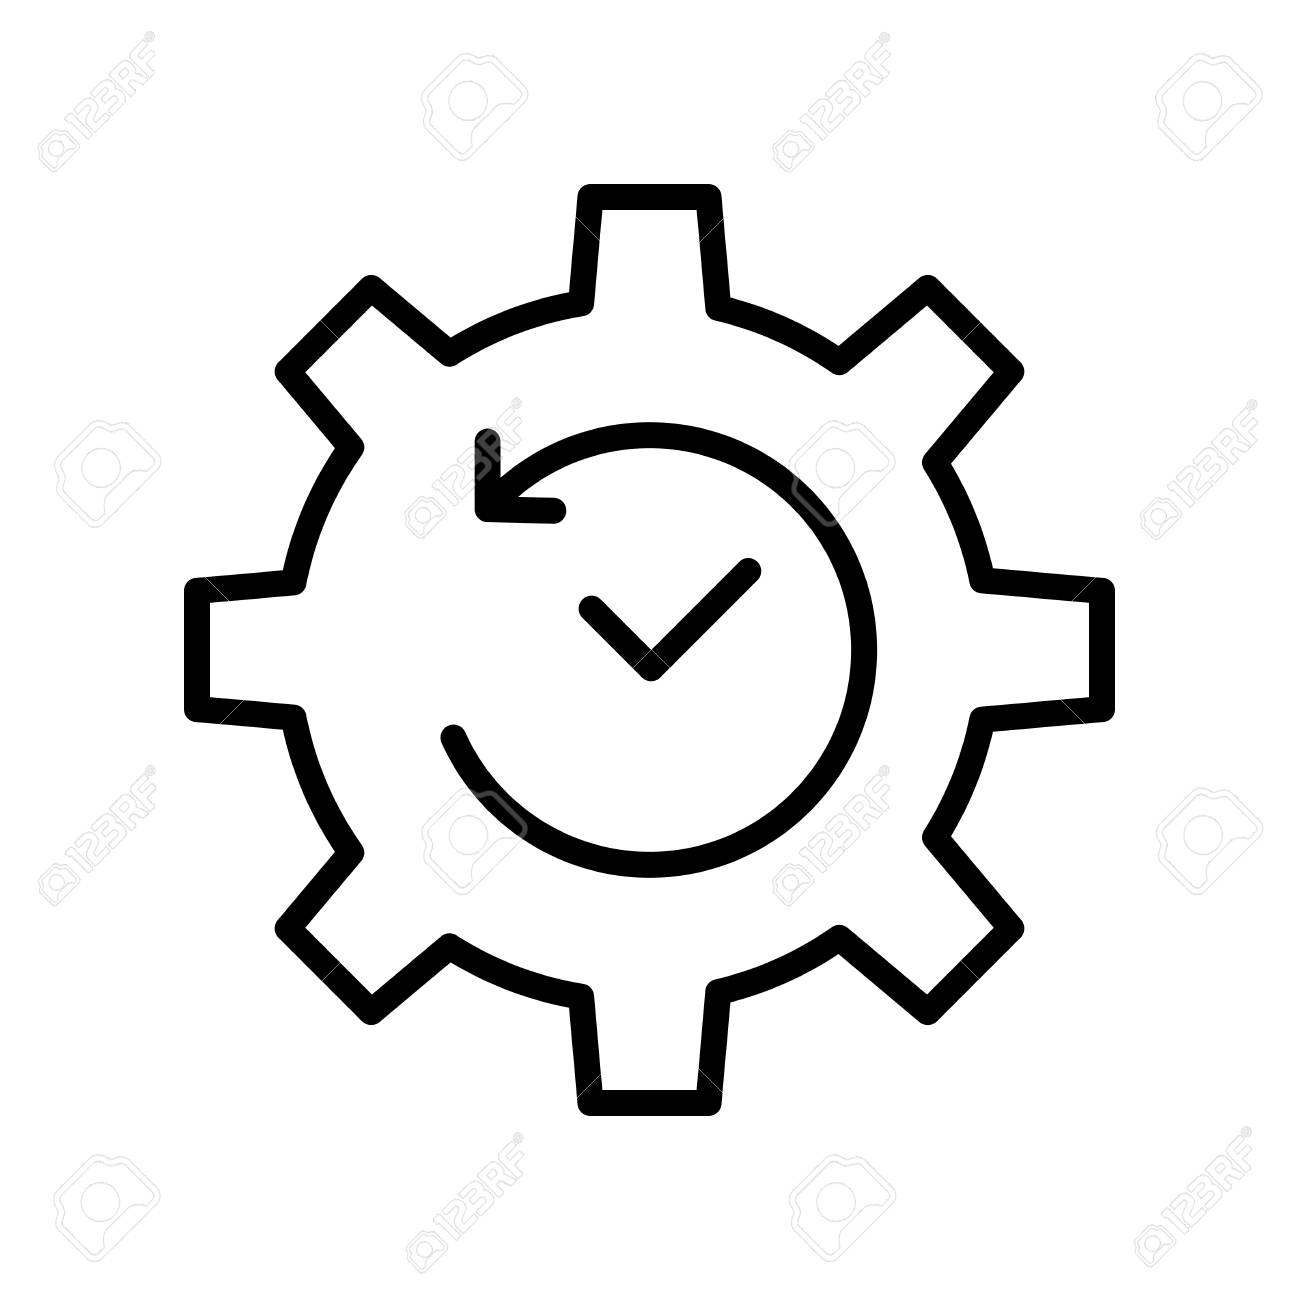 premium time icon or logo in line style high quality sign and